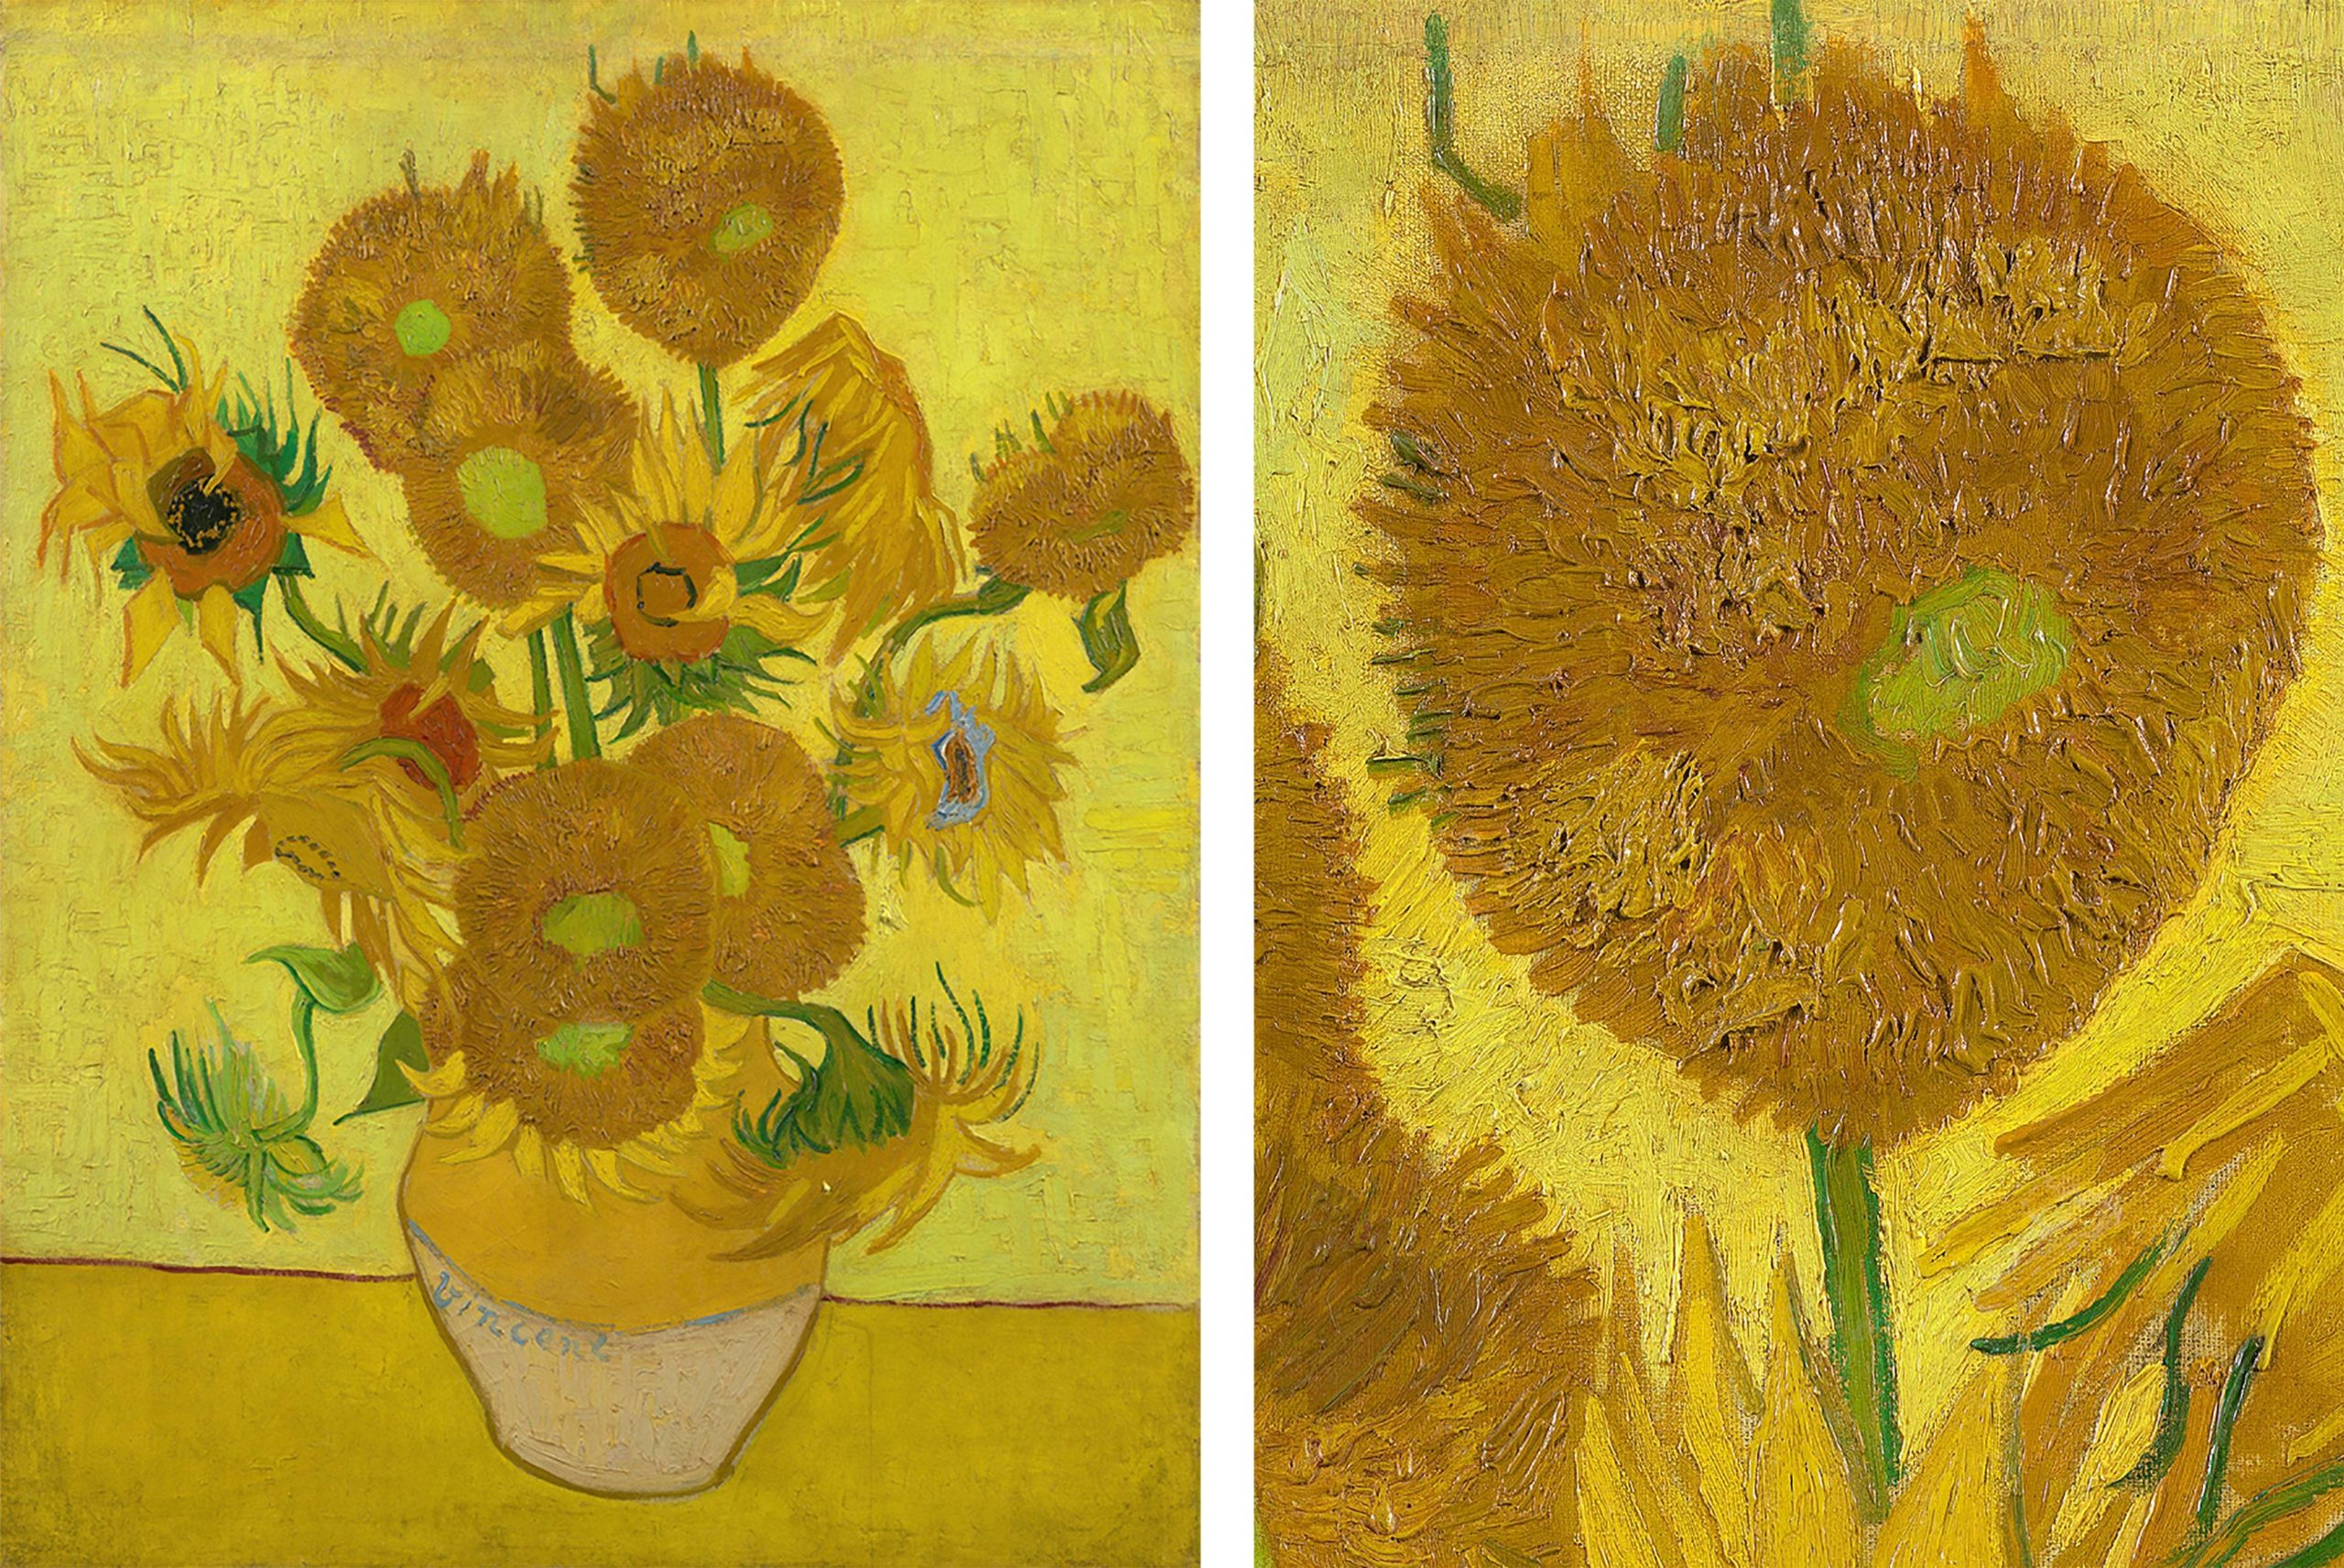 Van Gogh's 1889 Sunflowers and detail showing the thick brush strokes of paint.